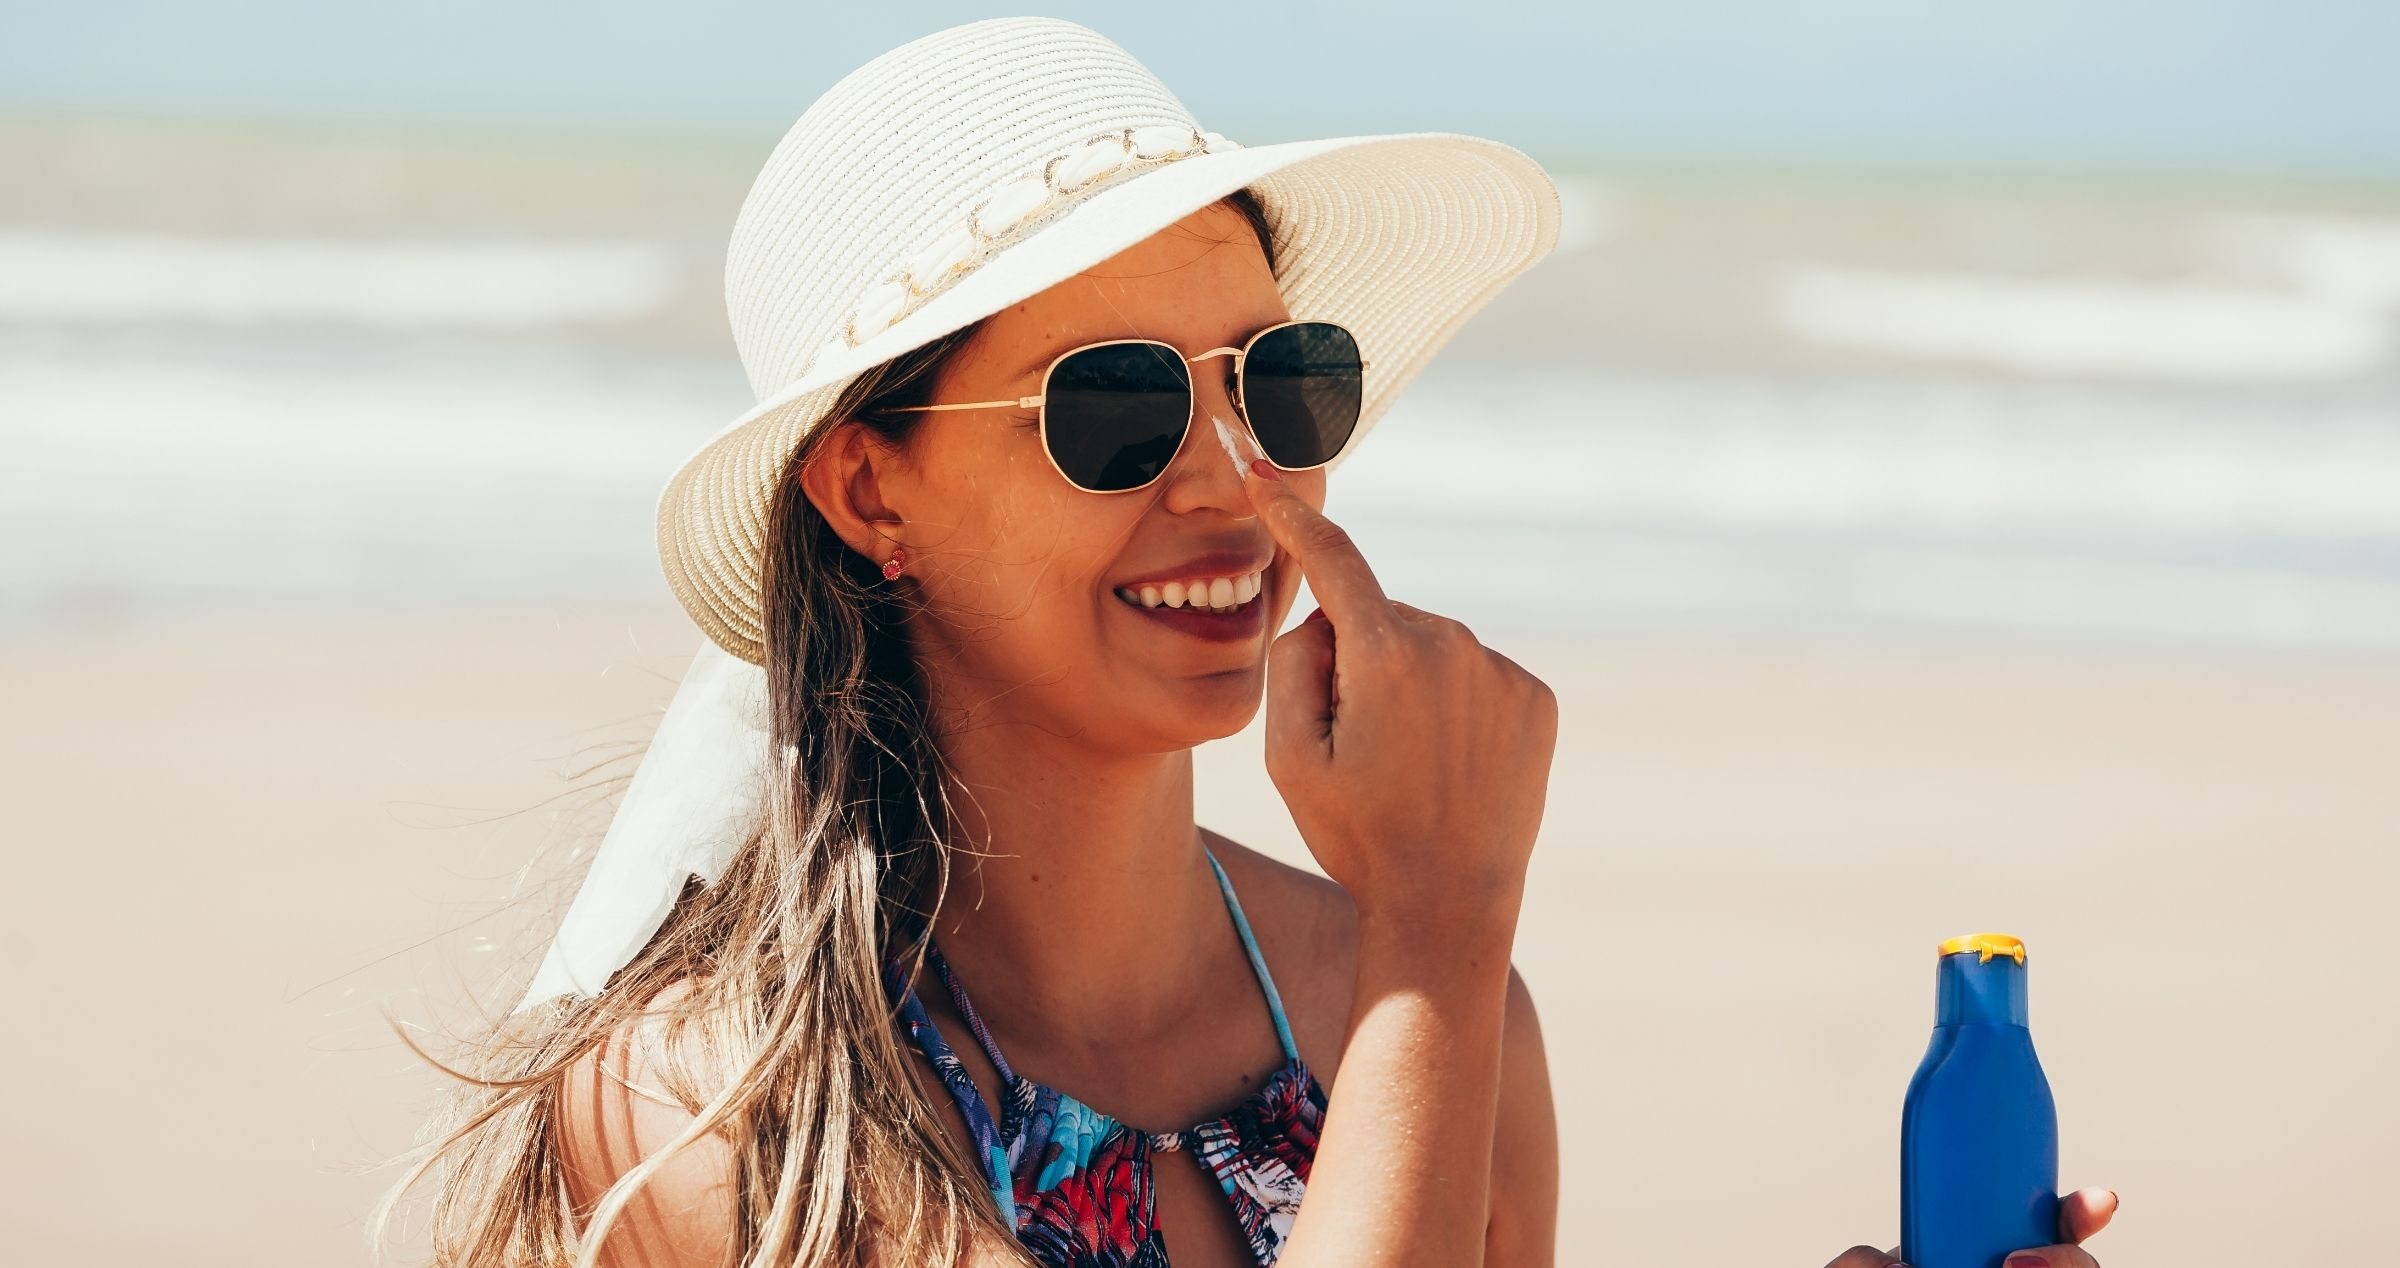 Lady at beach wearing sunglasses, hat and sunscreen